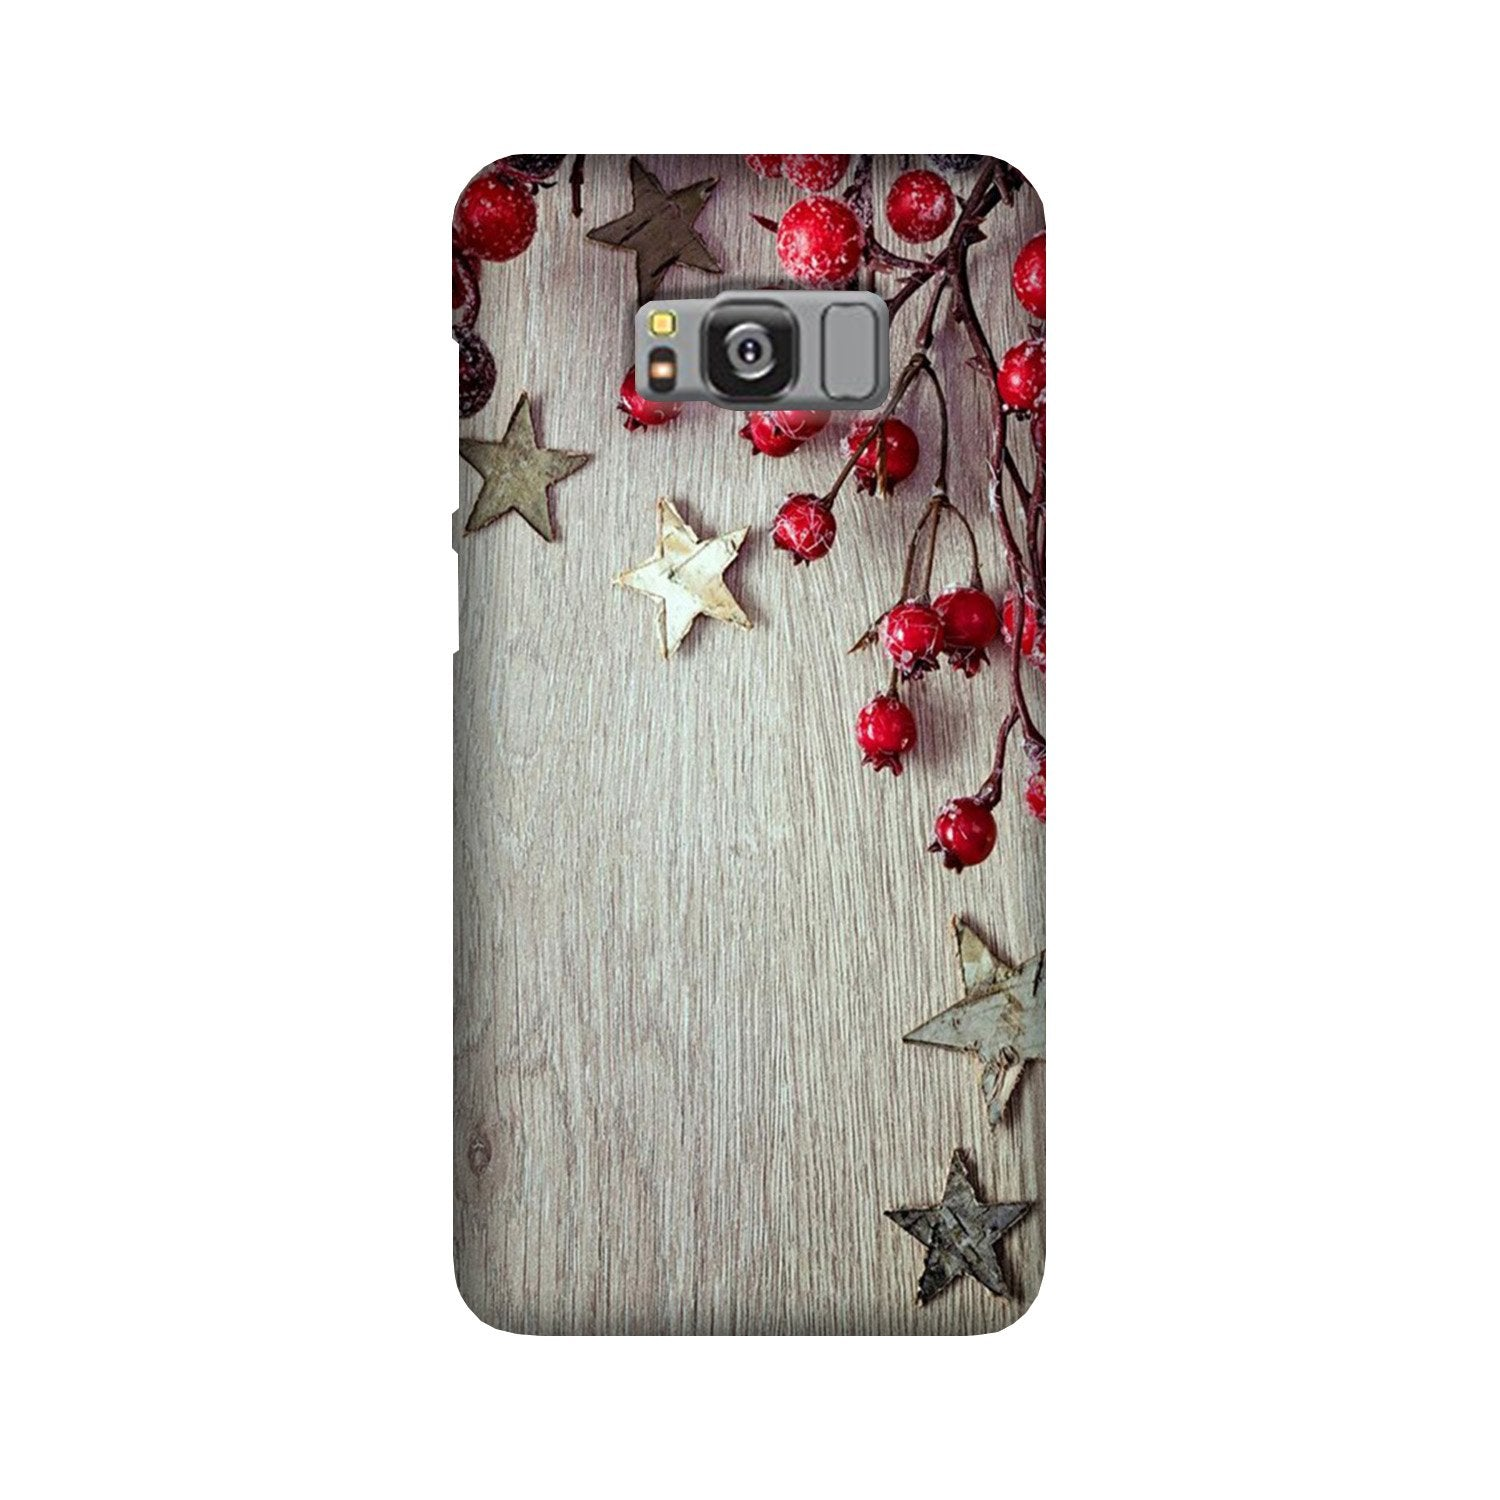 Stars Case for Galaxy S8 Plus